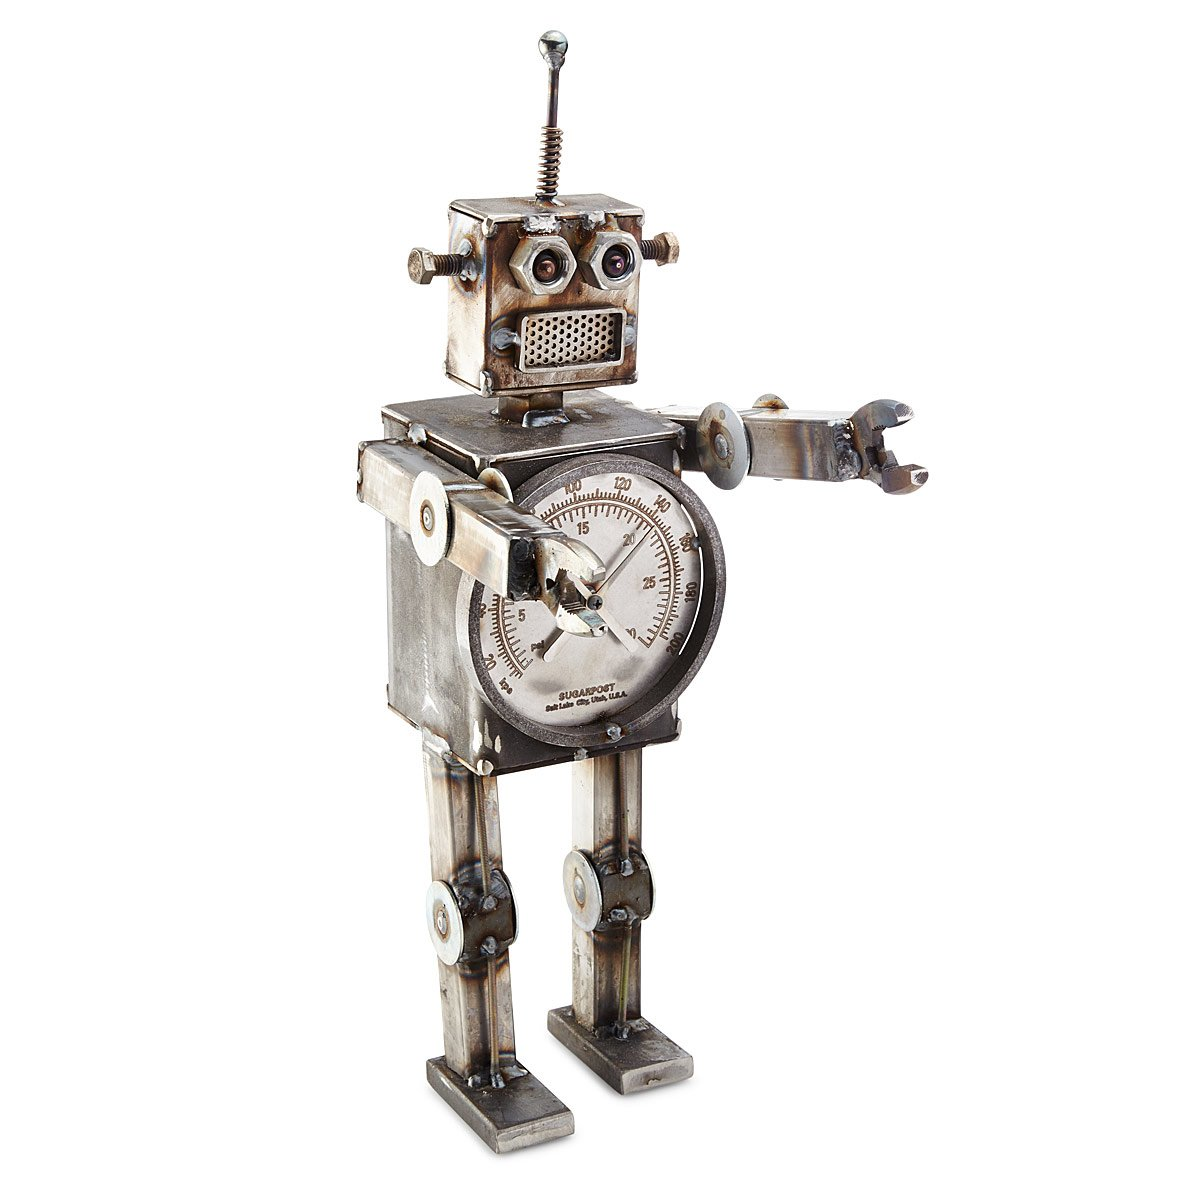 Retro Robot Sculpture | Metal Art, Steampunk | UncommonGoods